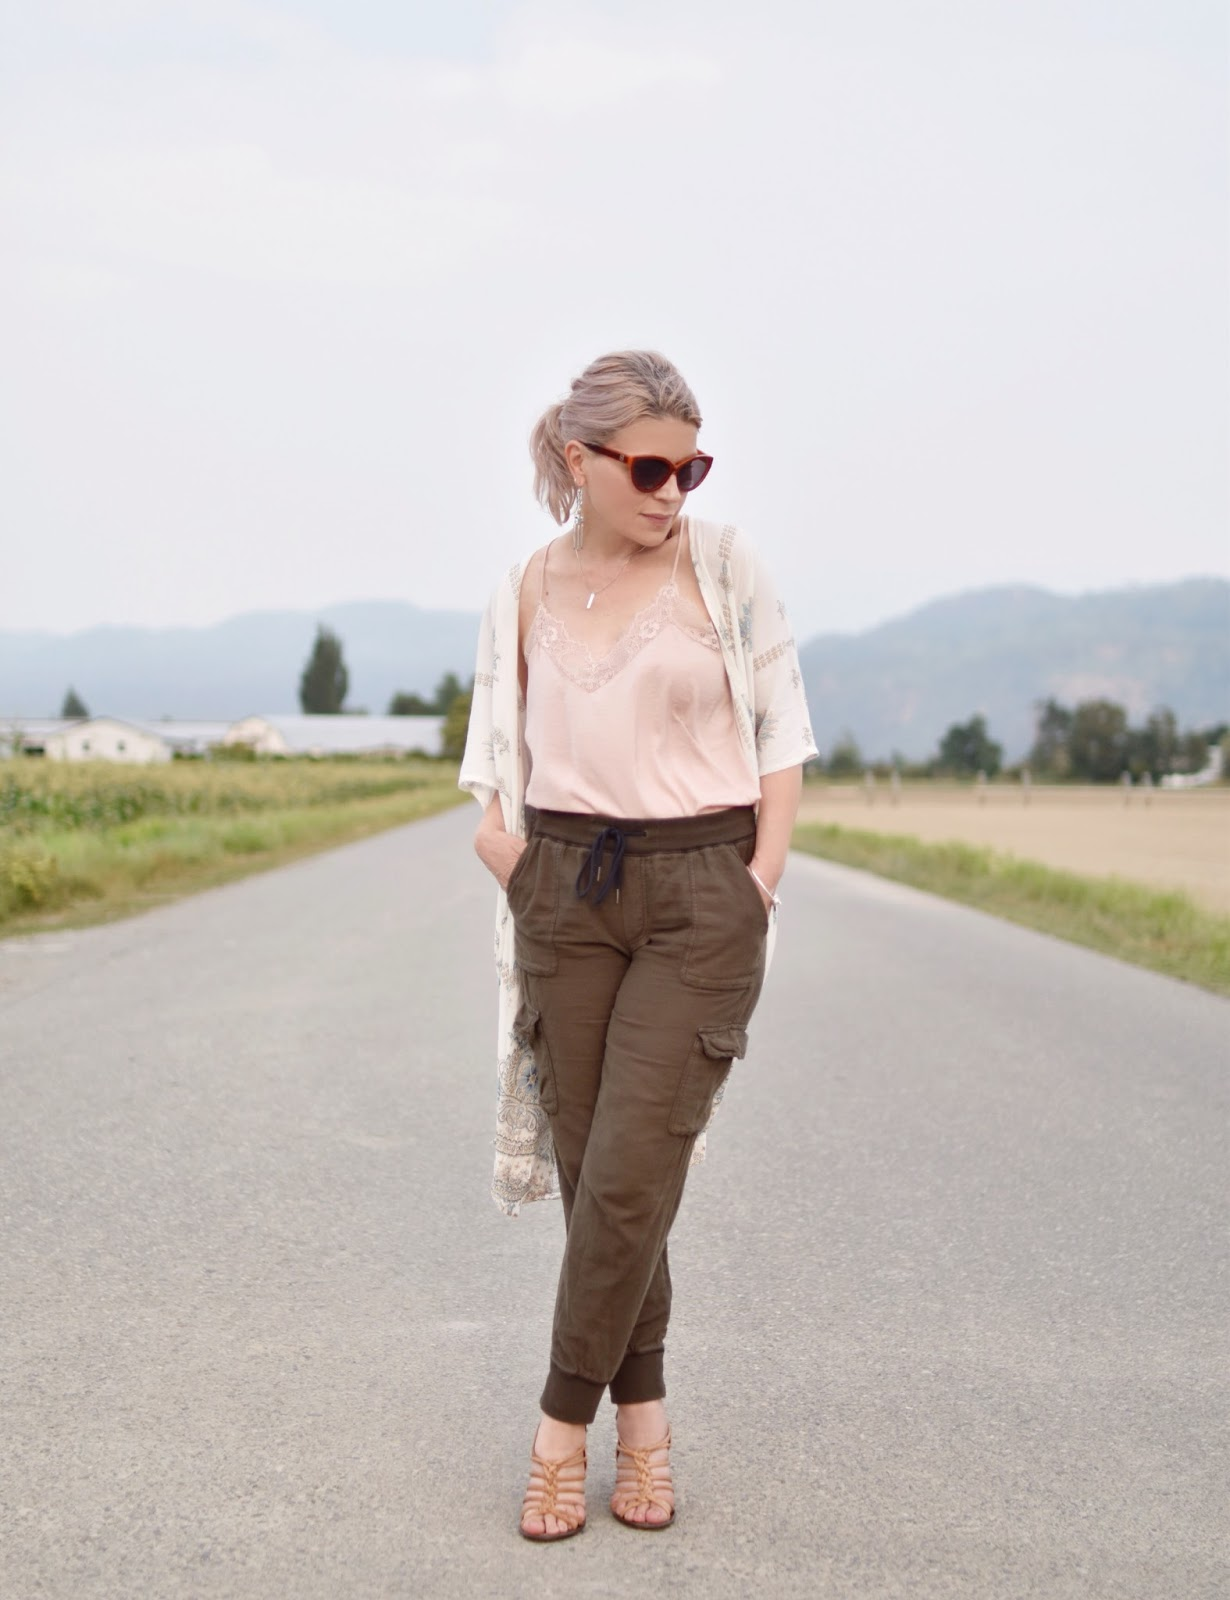 Monika Faulkner outfit inspiration - olive cargo pants, pink camisole, white damask-patterned kimono, strappy nude sandals